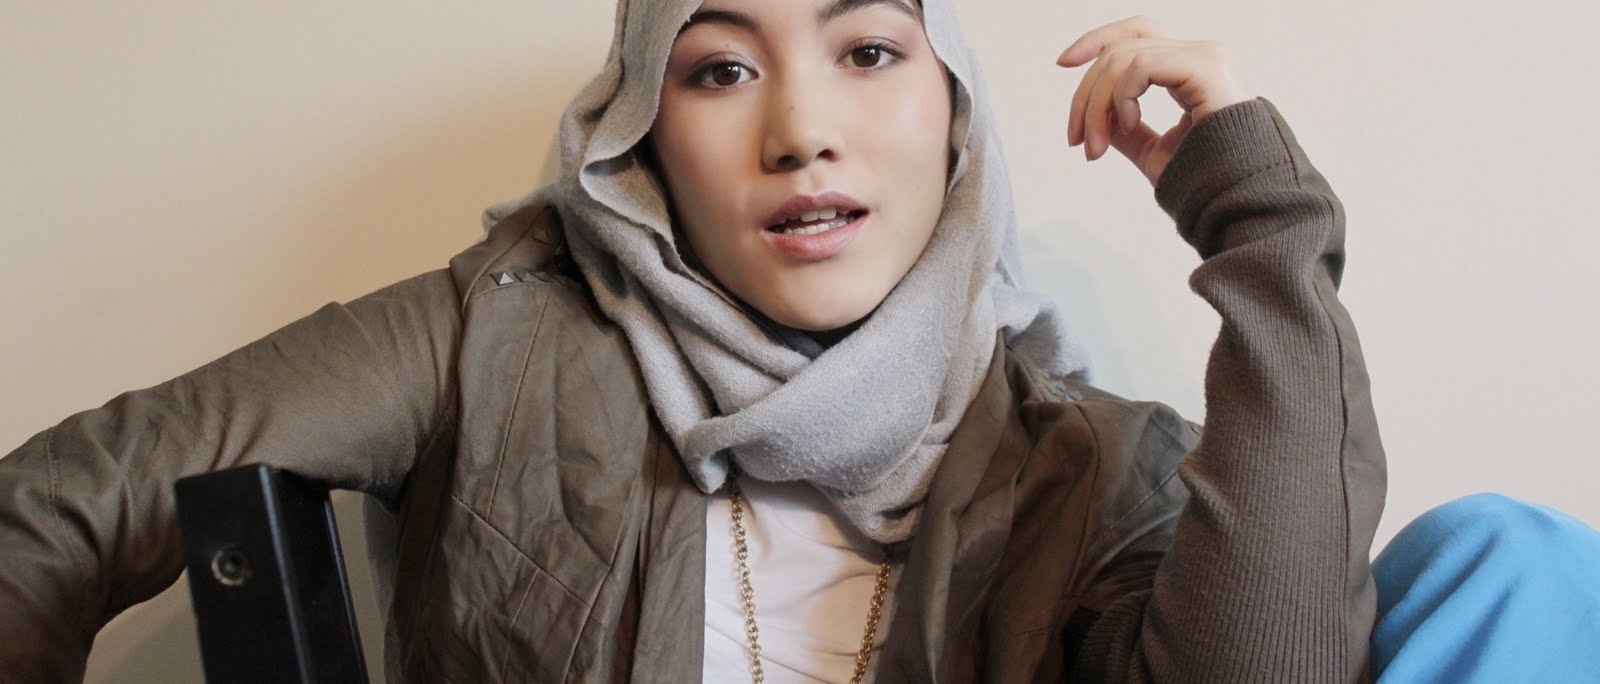 Carol mann the immodest modest fashion controversy in france Hijab fashion style hana tajima